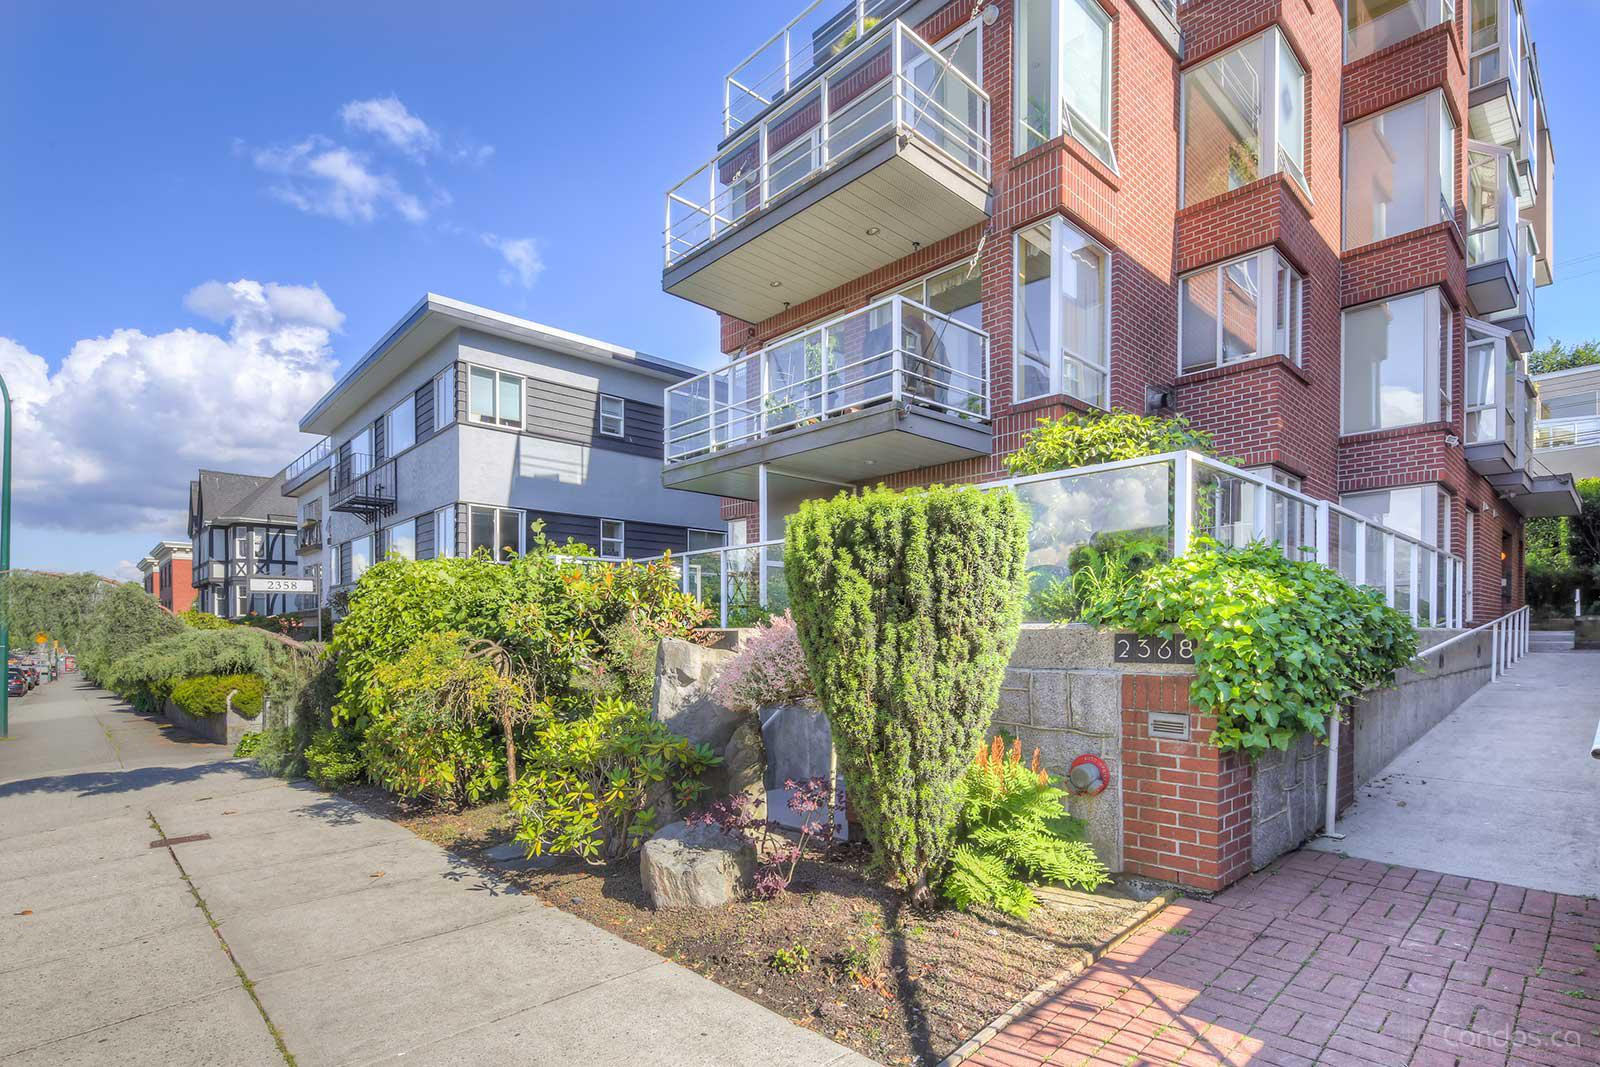 The Beachview Terrace at 2368 Cornwall Ave, Vancouver 1